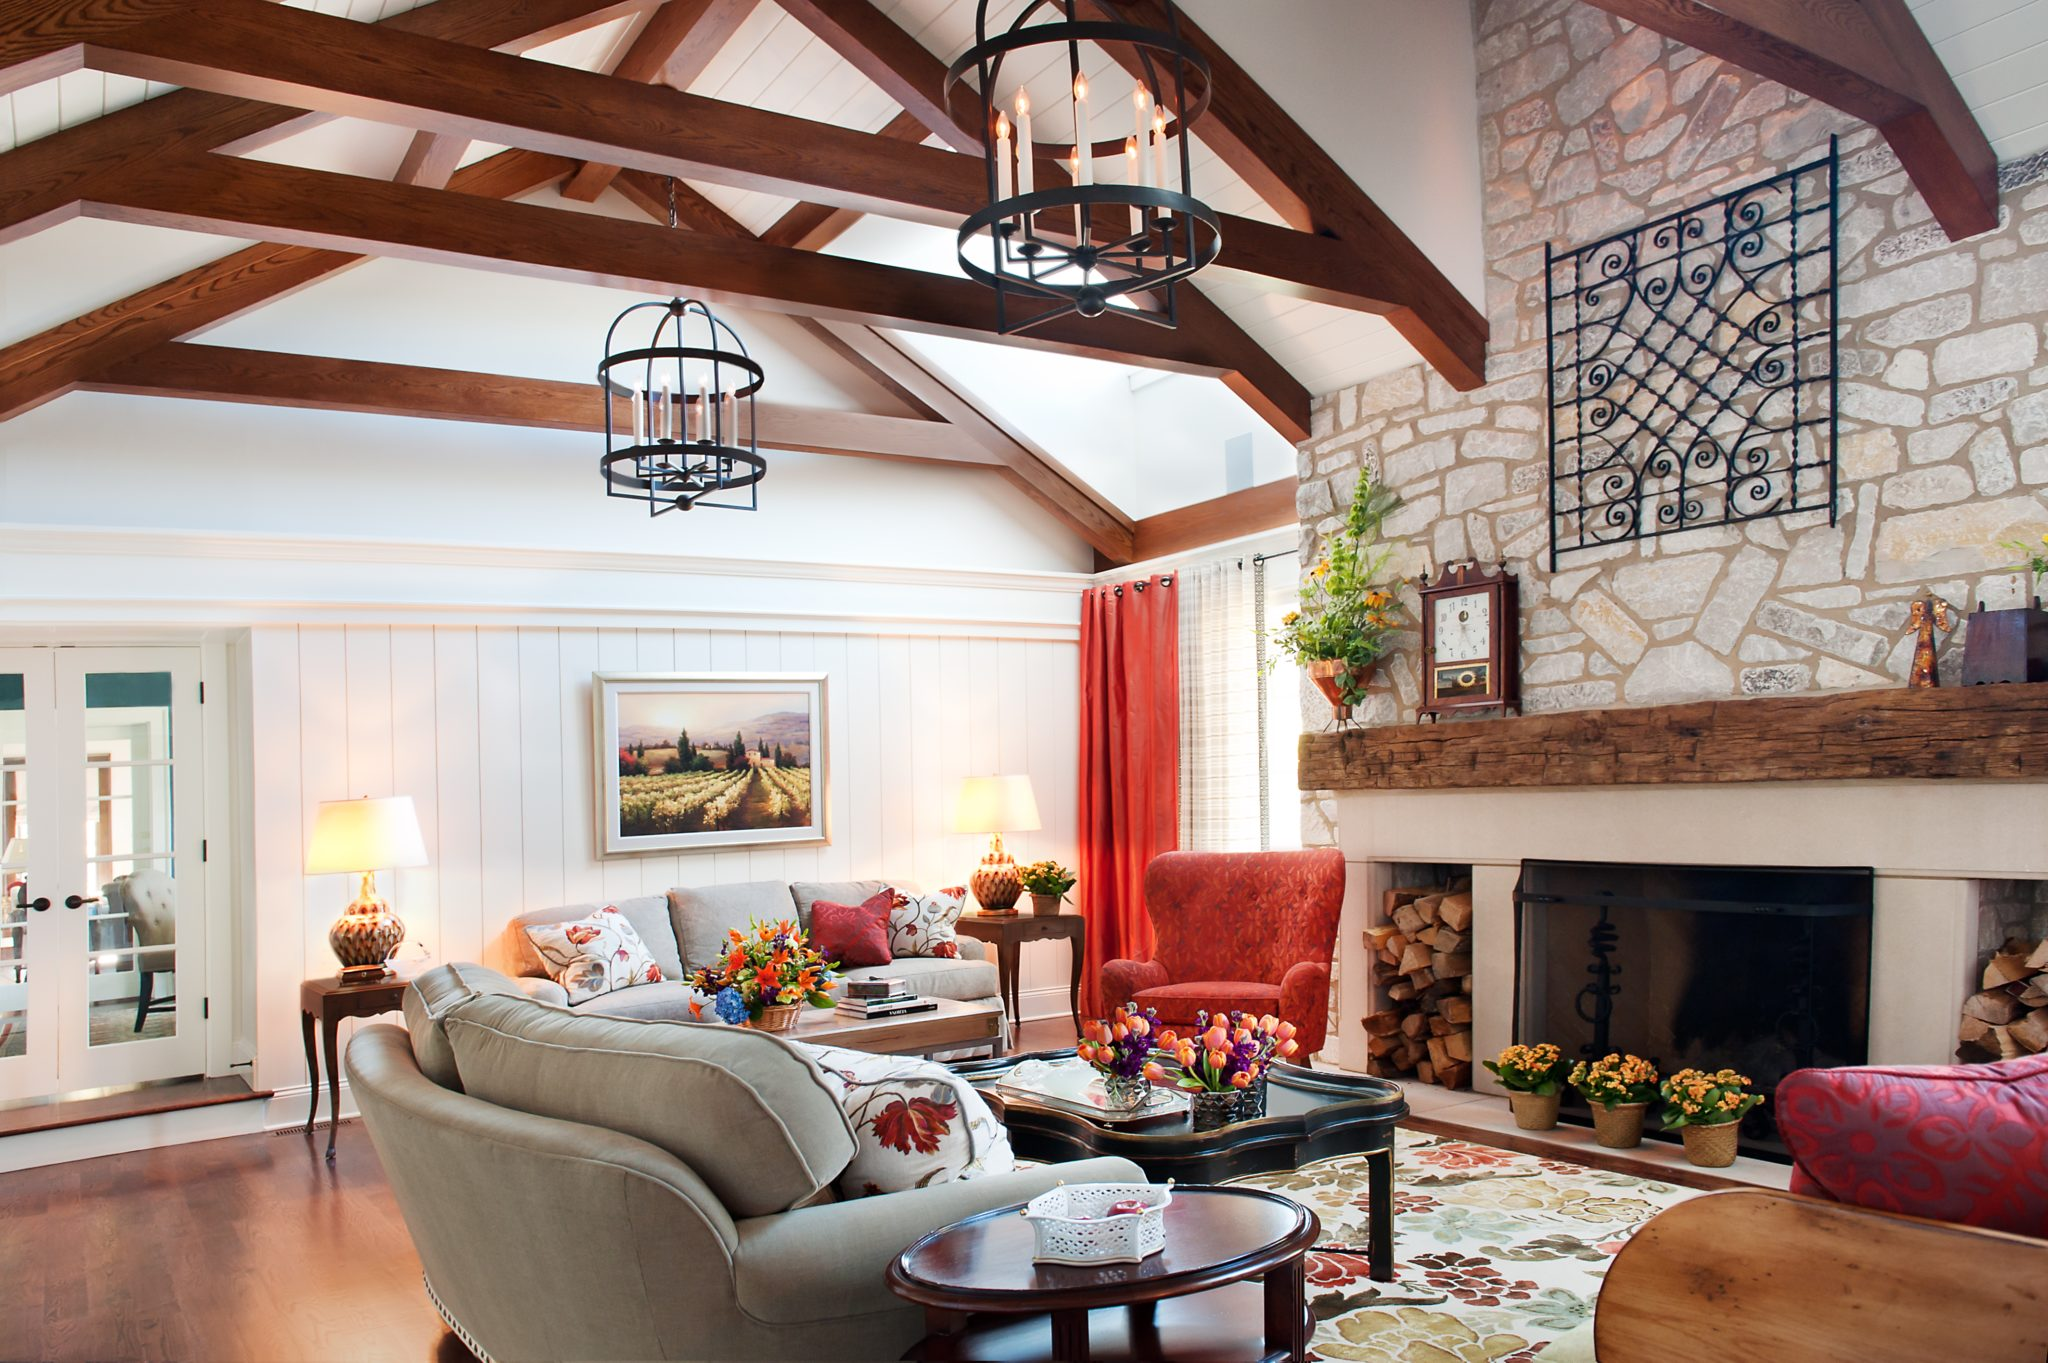 Planked ceiling + trusses with lanterns, stone fireplace, coral drapes & chair by Elizabeth Drake